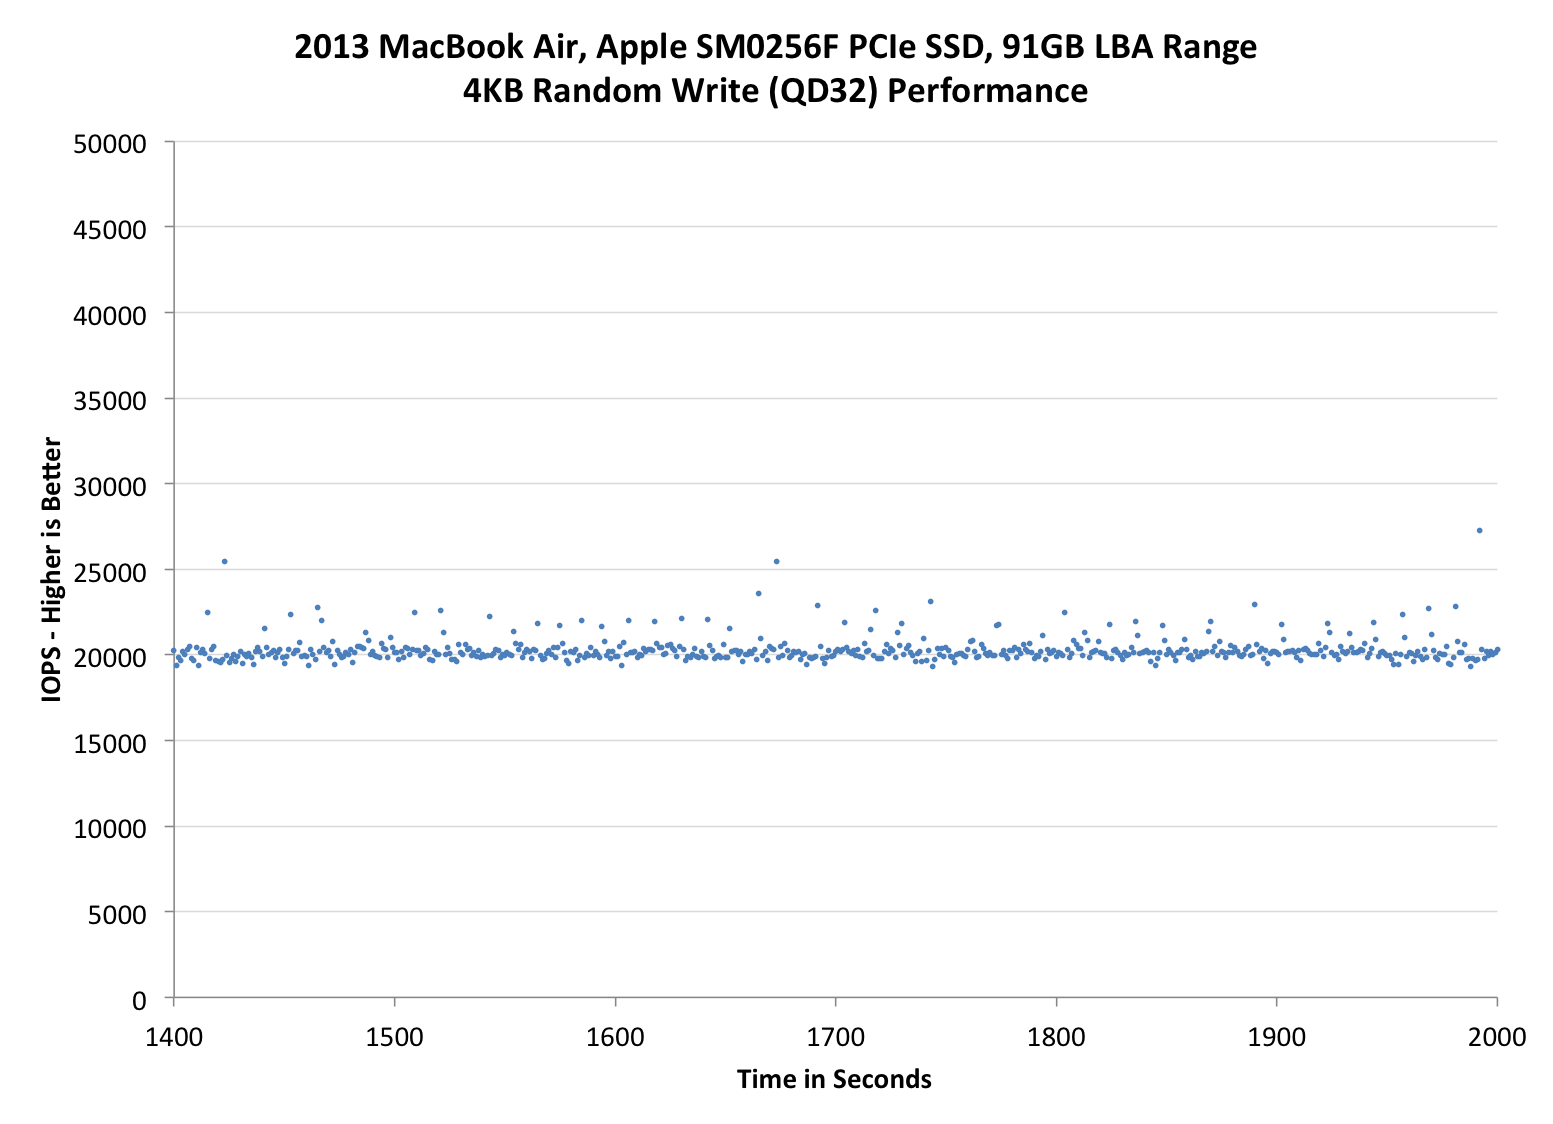 Pcie Ssd Performance The 2013 Macbook Air Review 13 Inch